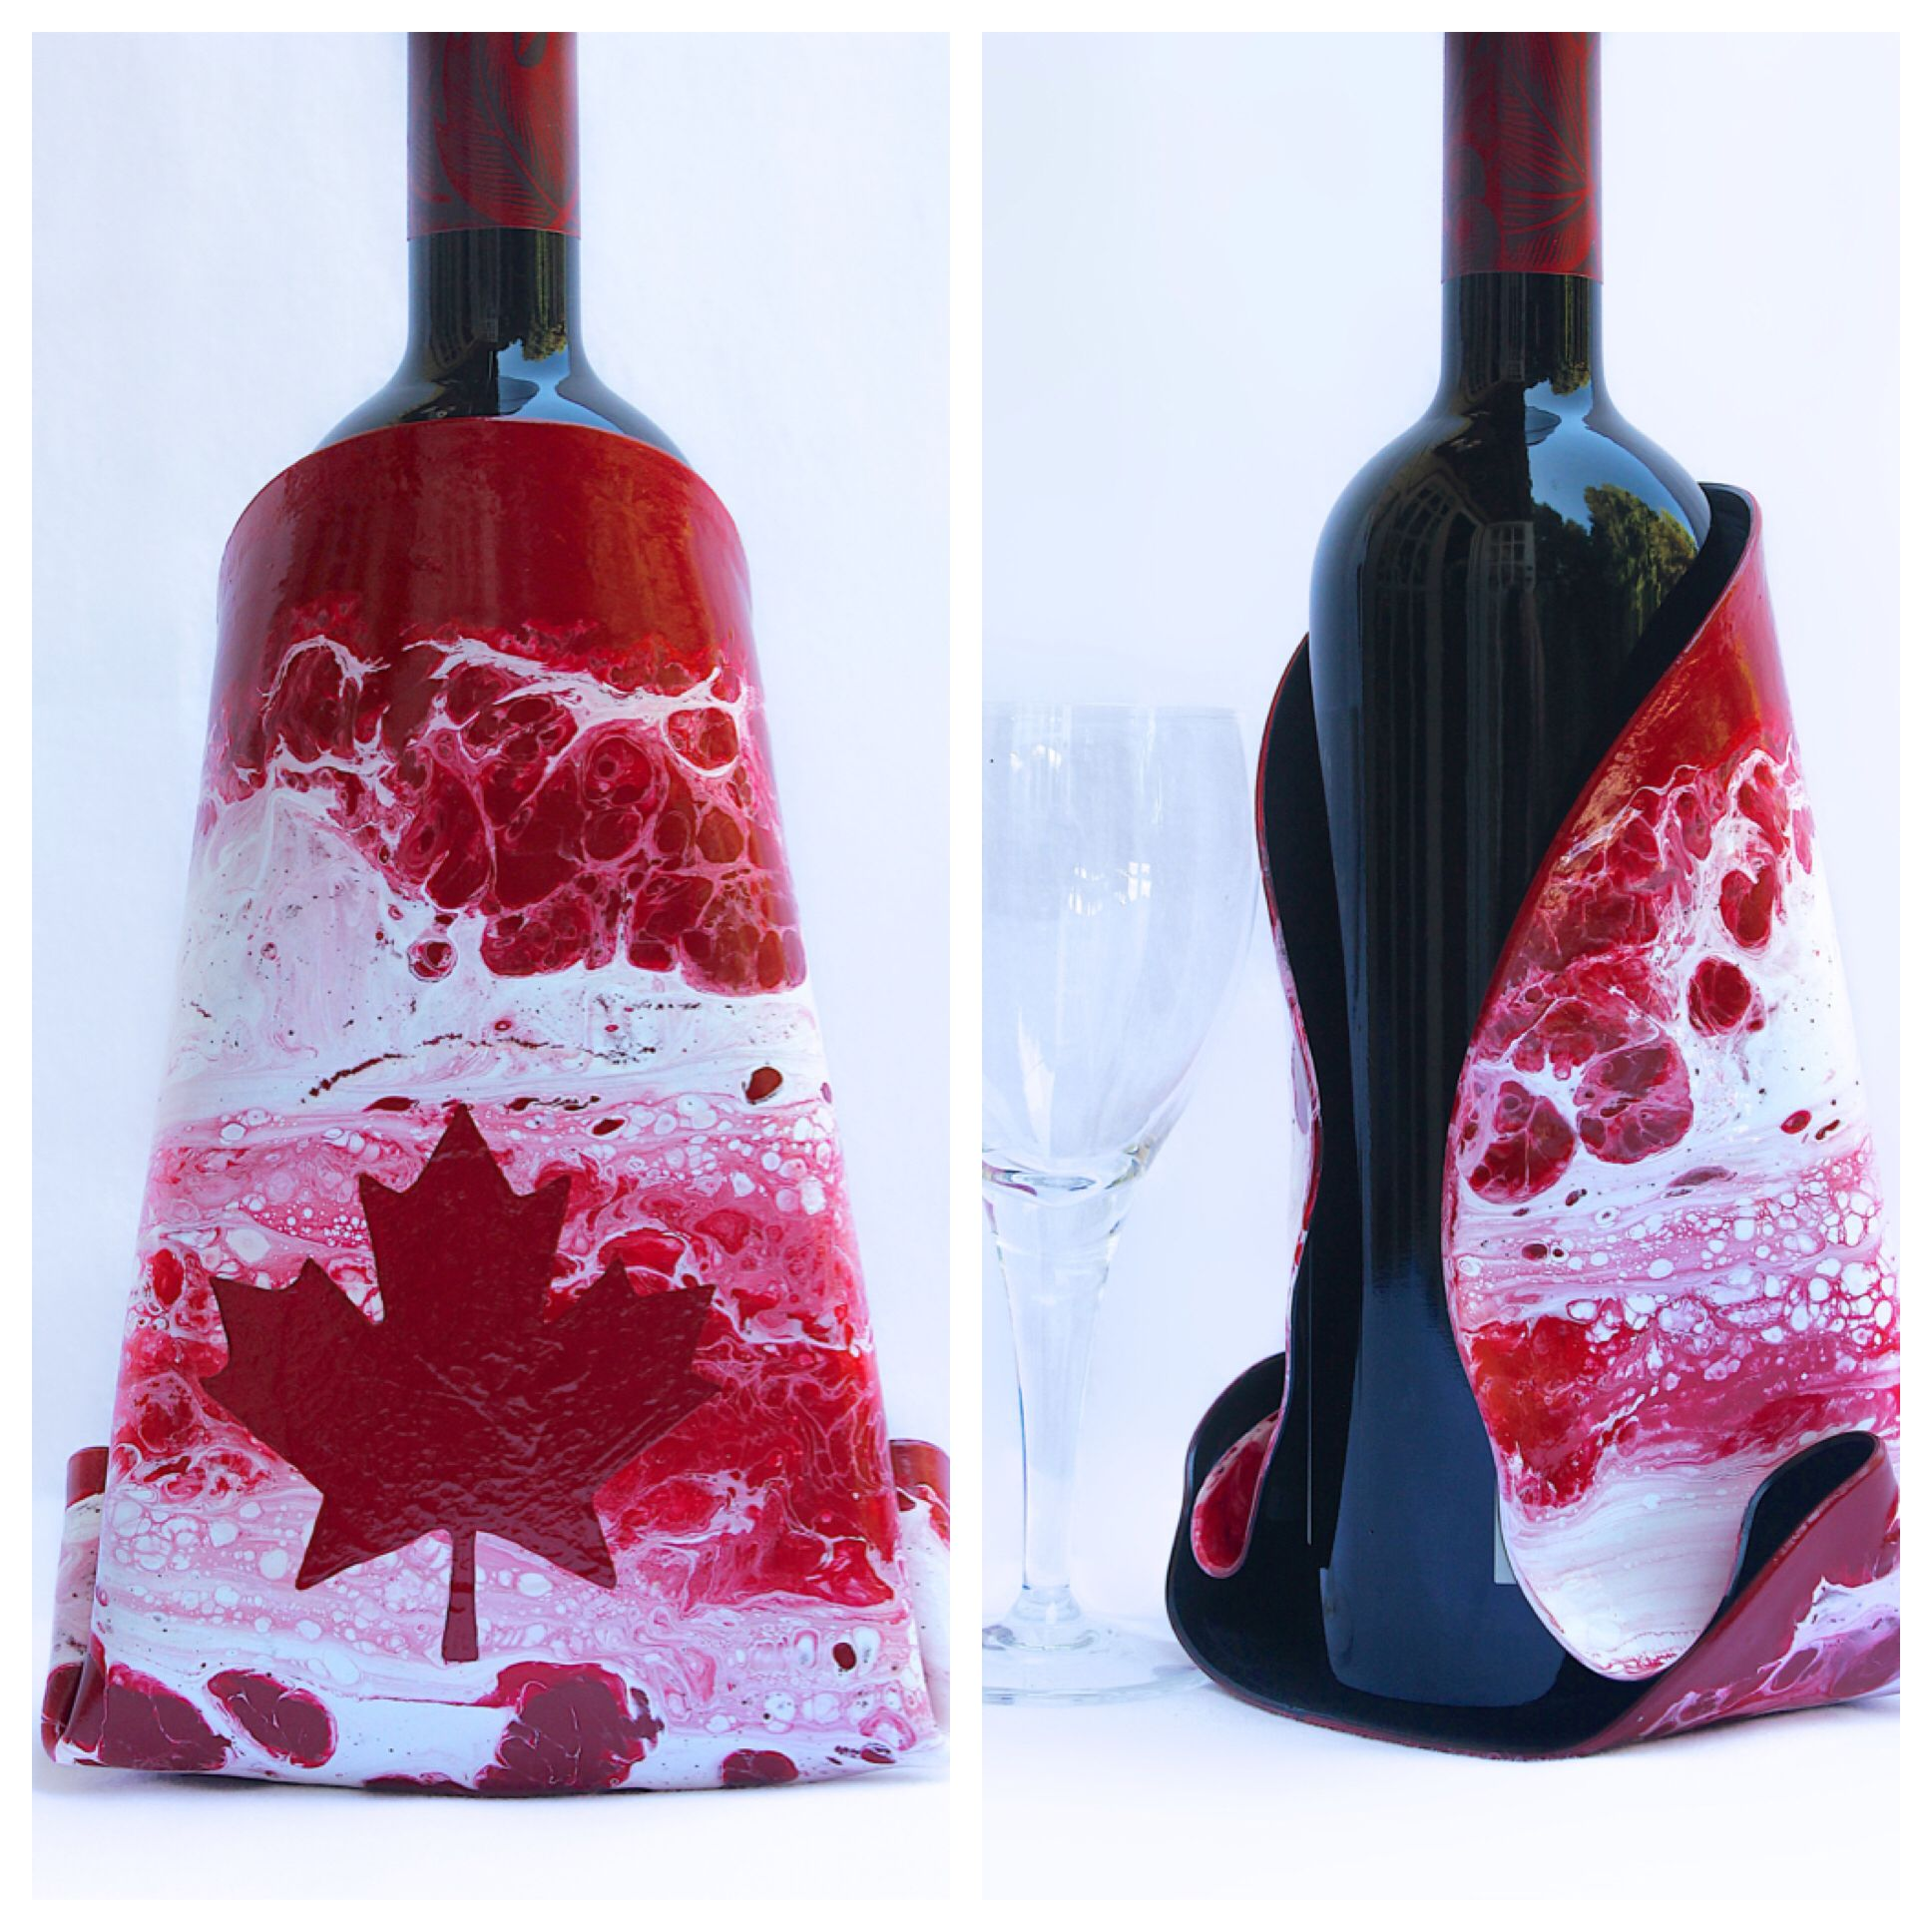 Abstract Canadian Wine Bottle Cover Hand Painted On A Vinyl Record Great Gift Idea For A Canadian Wine Lover Wine Bottle Covers Bottle Cover Bottle